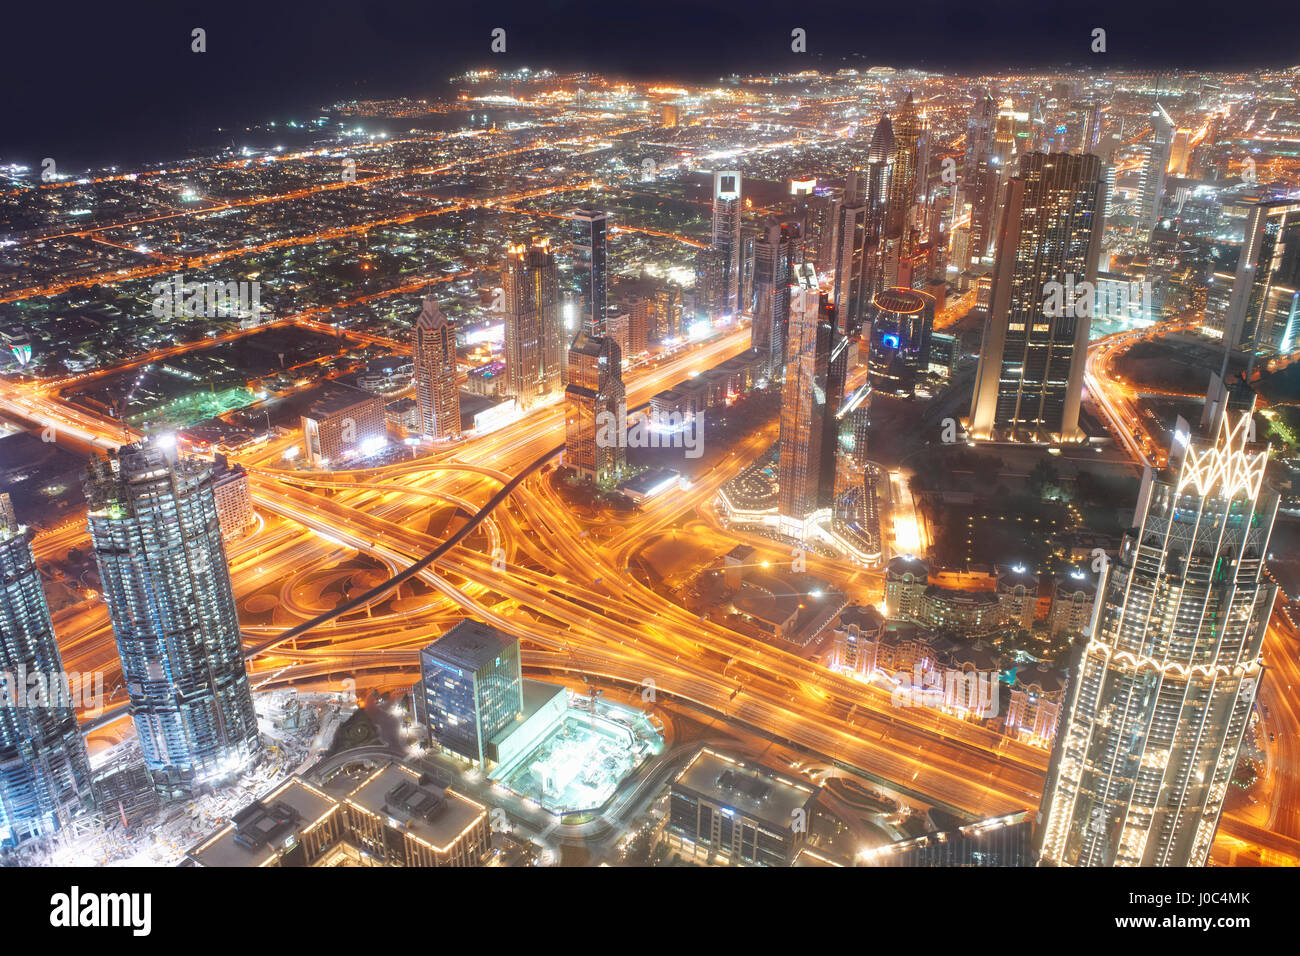 Cityscape at night showing light trails, elevated view, Dubai, UAE - Stock Image